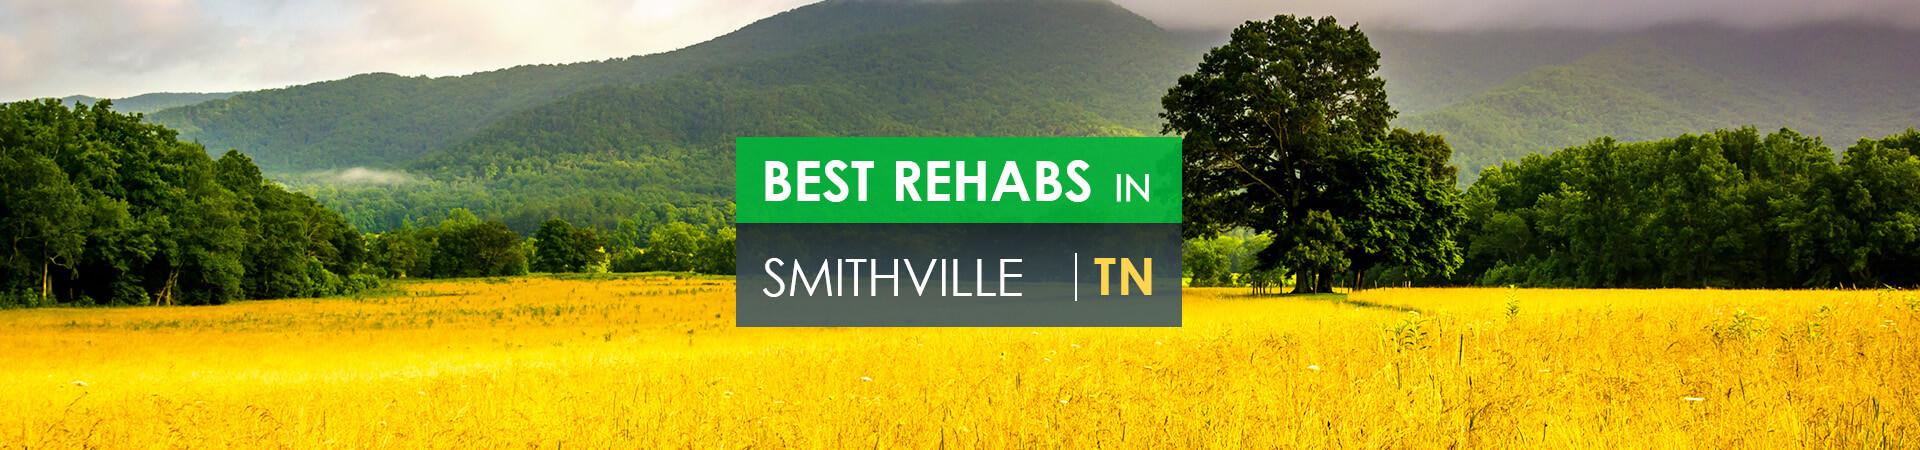 Best rehabs in Smithville, TN